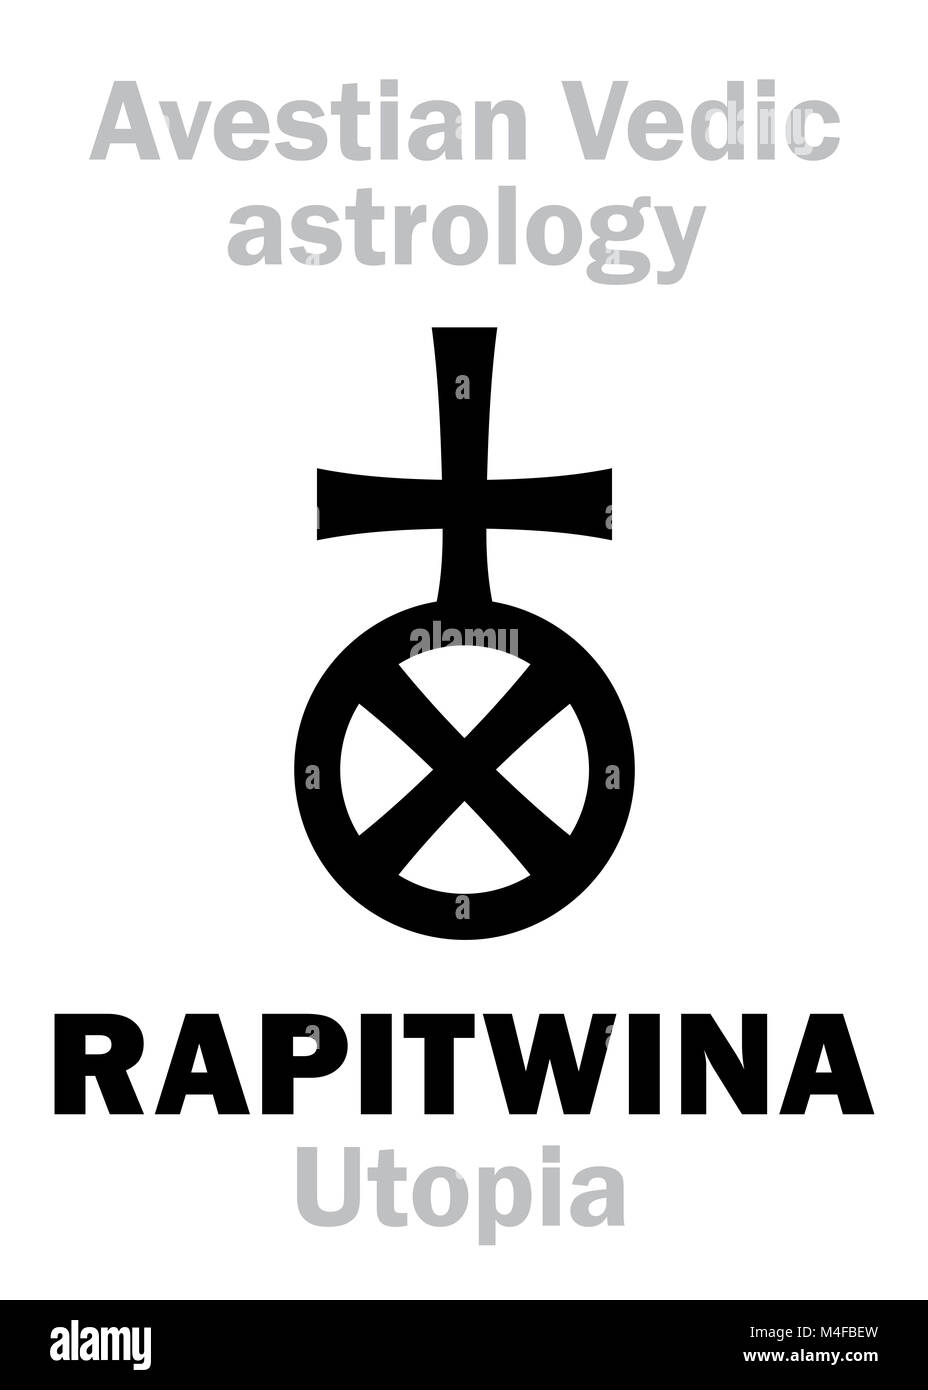 Astrology: astral planet RAPITWINA (Utopia) - Stock Image